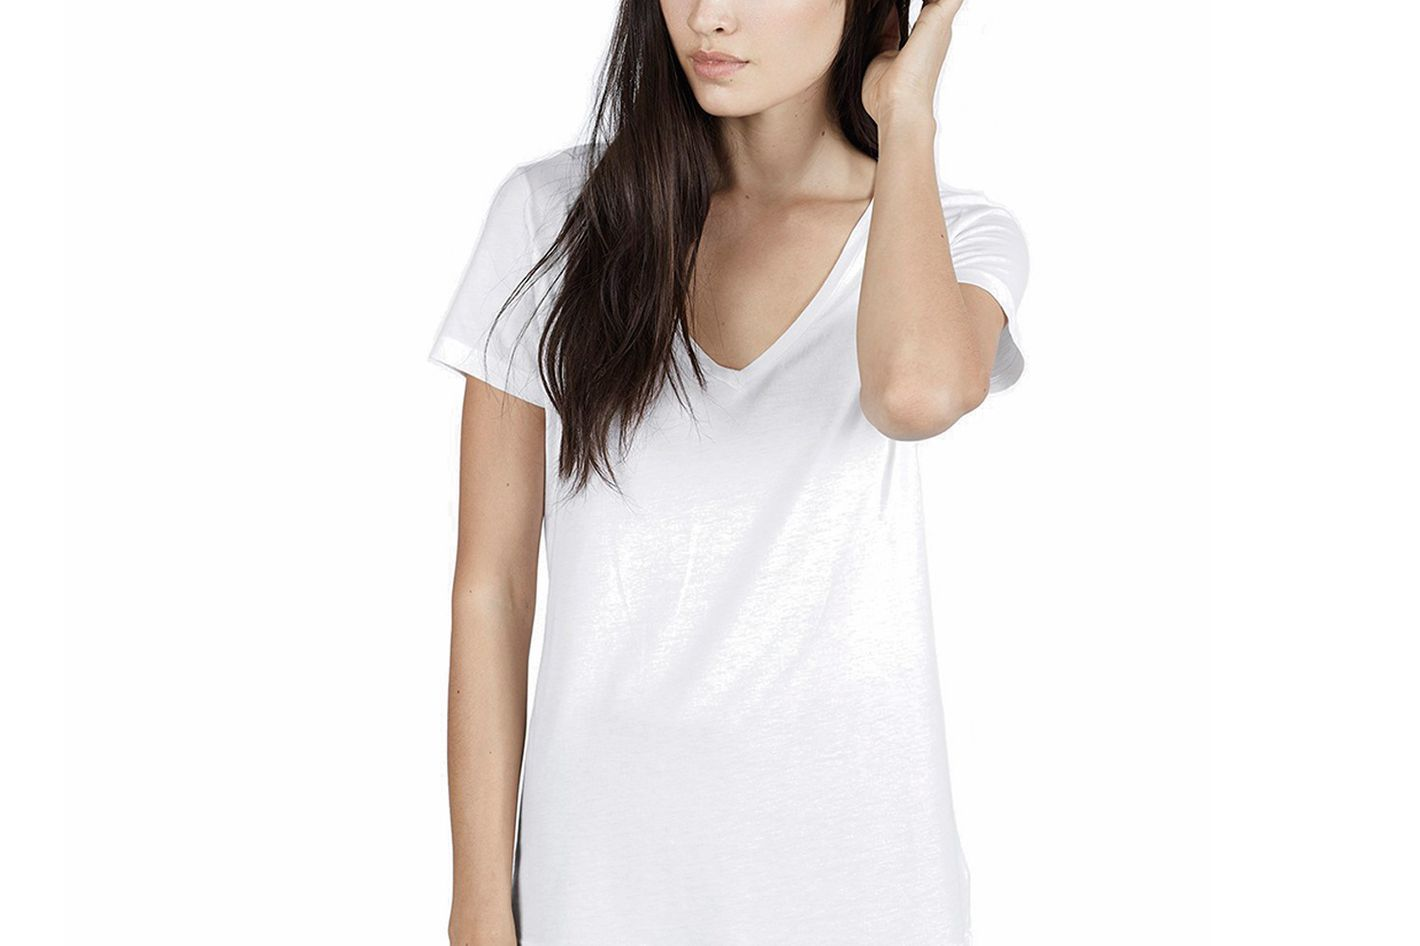 Plain white shirts cheapest t shirt jpg - For Wearing With A Necklace